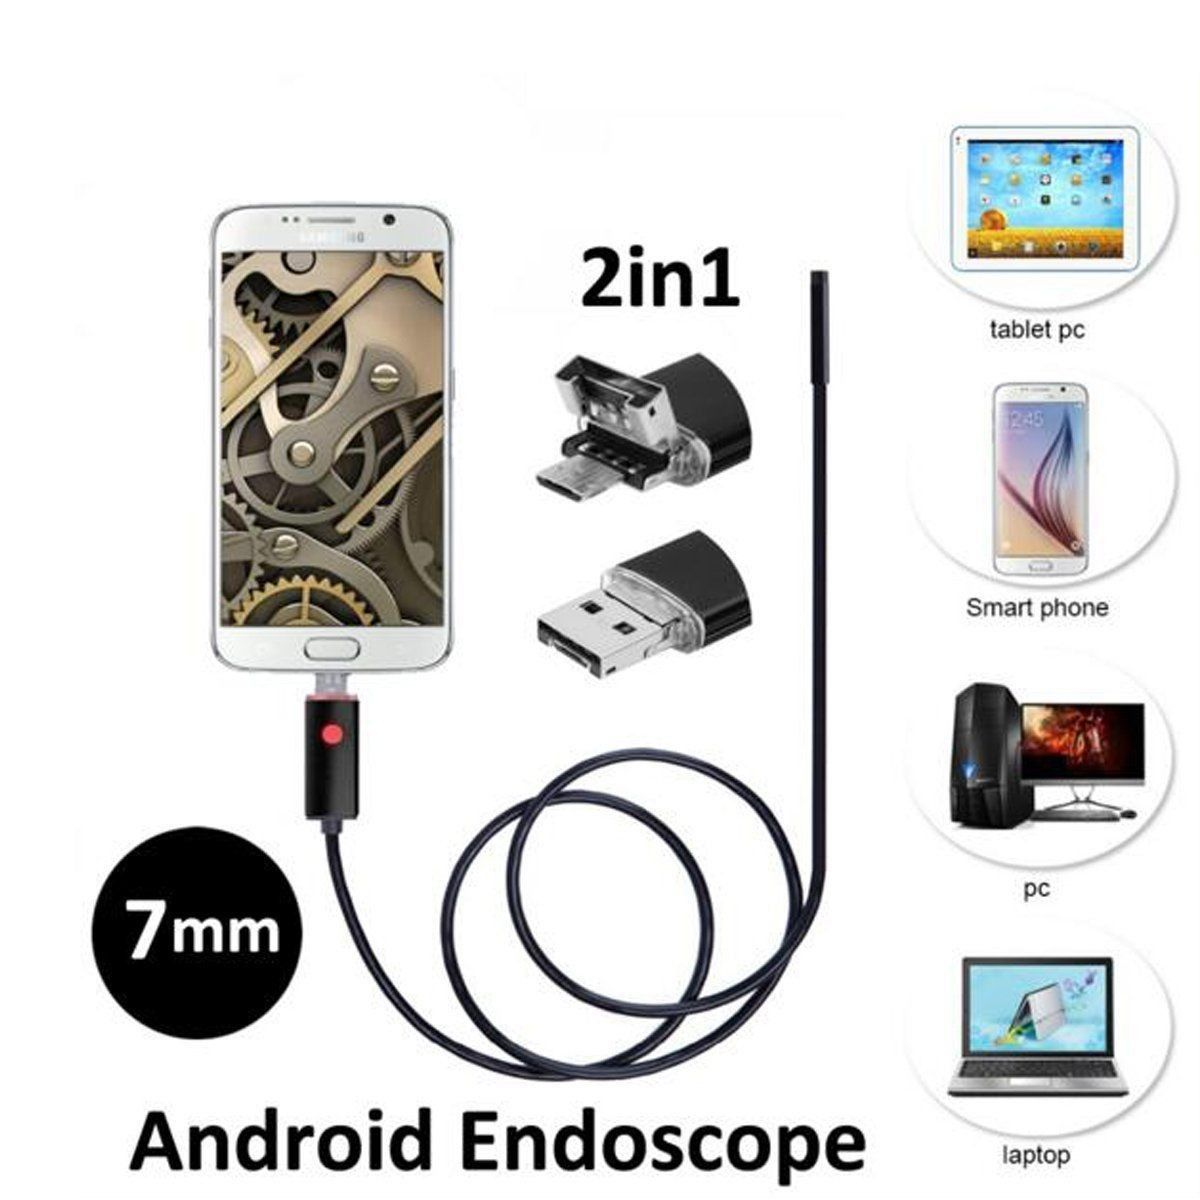 2M 7MM Android PC HD Endoscope Waterproof til android og pc - ådalsbruk  - 2M 7MM Android PC HD Endoscope Waterproof - ådalsbruk